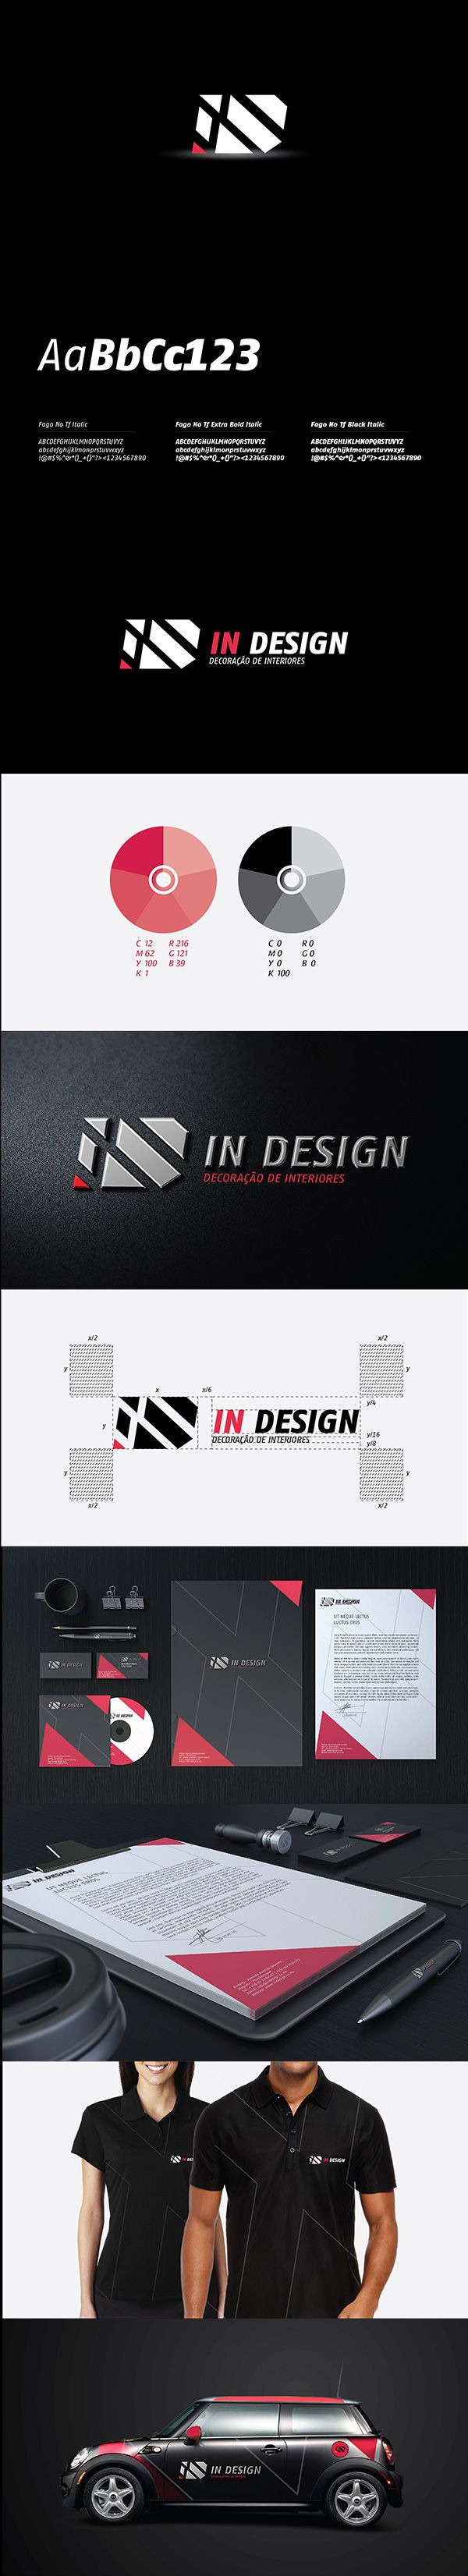 In Design is a young interiour decoration company from Mozambique. They asked NSV Design to develop their brand identity. The brand identity should portrait a dynamic and youthfull image and bold and highly contrasted colours should be incorporated.  This is the approved proposal.  Enjoy!  View entire project here: http://www.behance.net/gallery/In-Design-Corporate-Identity/13003037